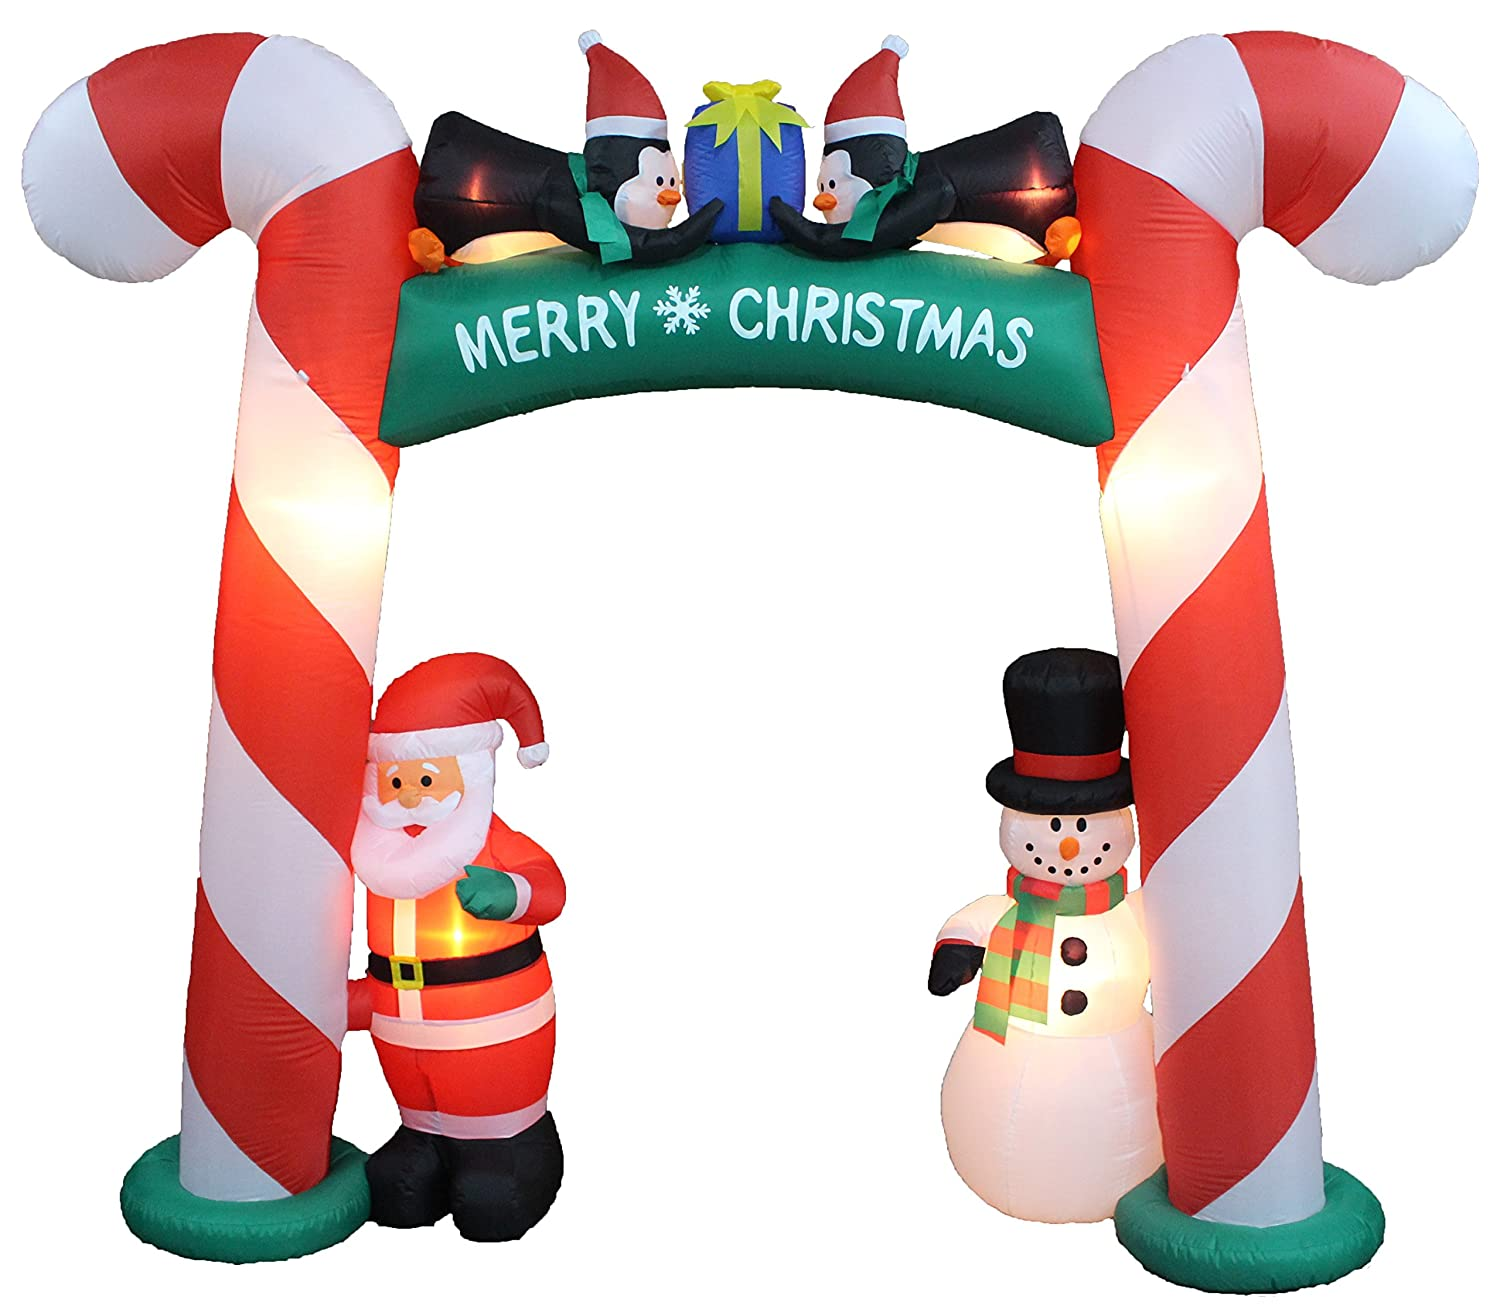 Amazon.com: 8 Foot Tall Lighted Christmas Inflatable Candy Cane ...